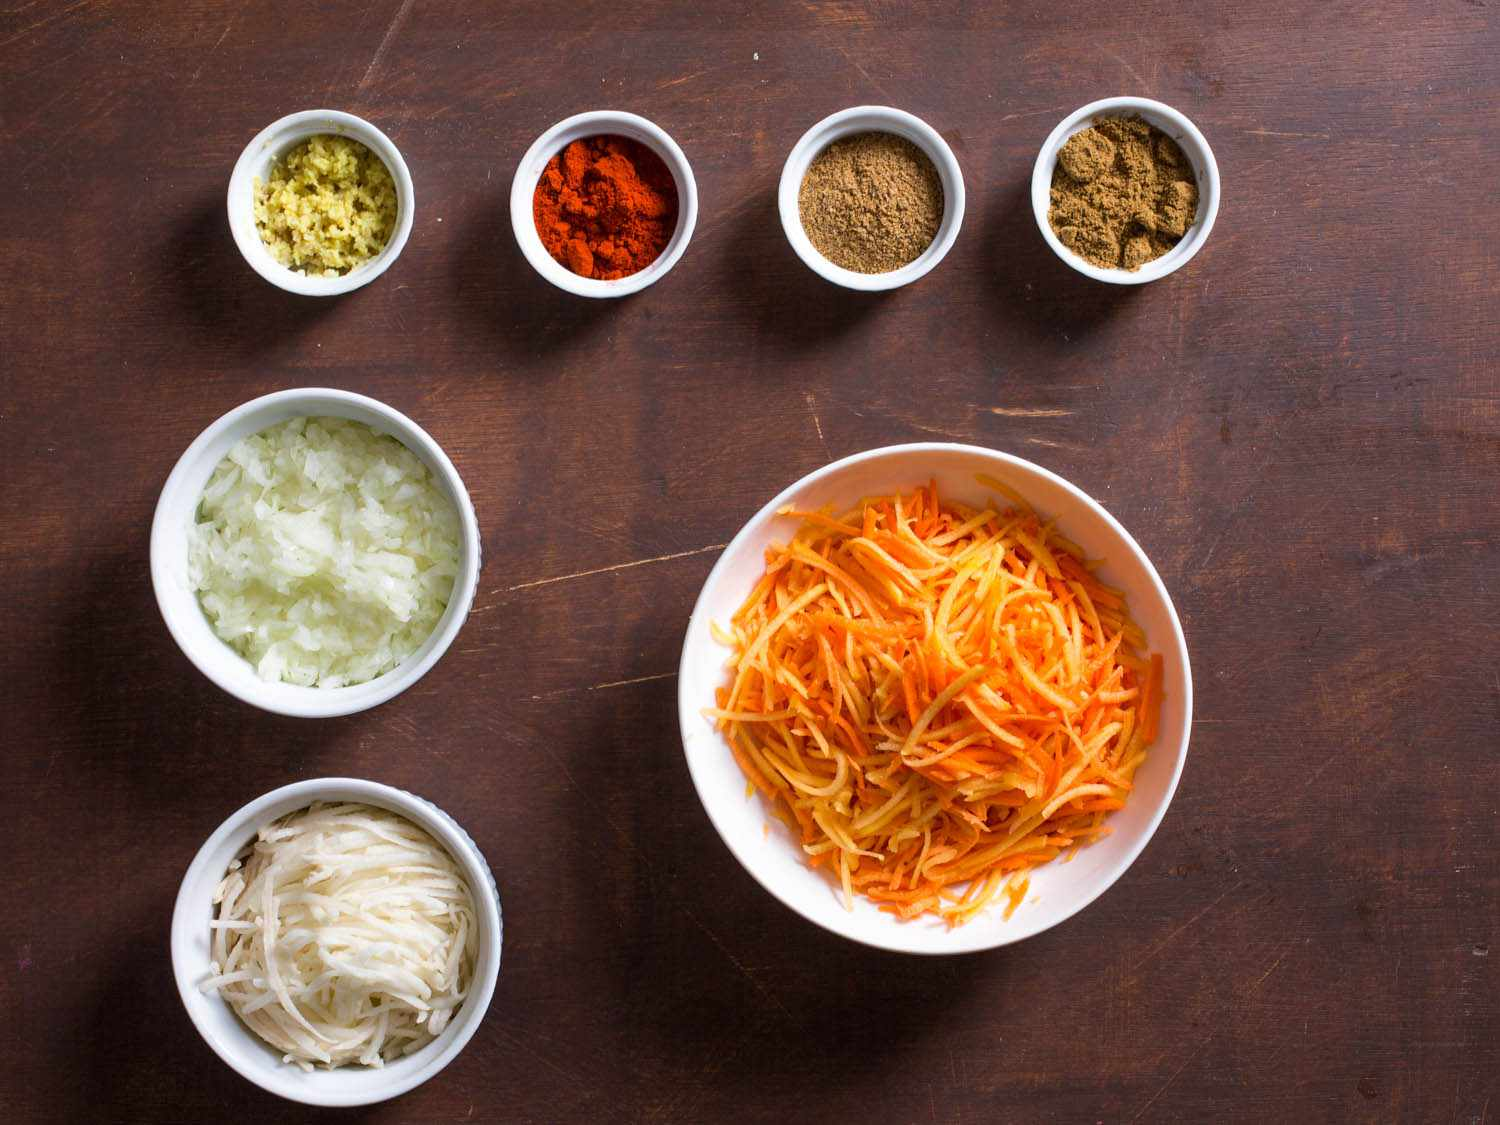 Overhead shot of ingredients for sweet potato, squash, and carrot latkes: shredded carrot, squash, and sweet potato; shredded potato; chopped onion; fresh ginger; paprika; cumin; and coriander